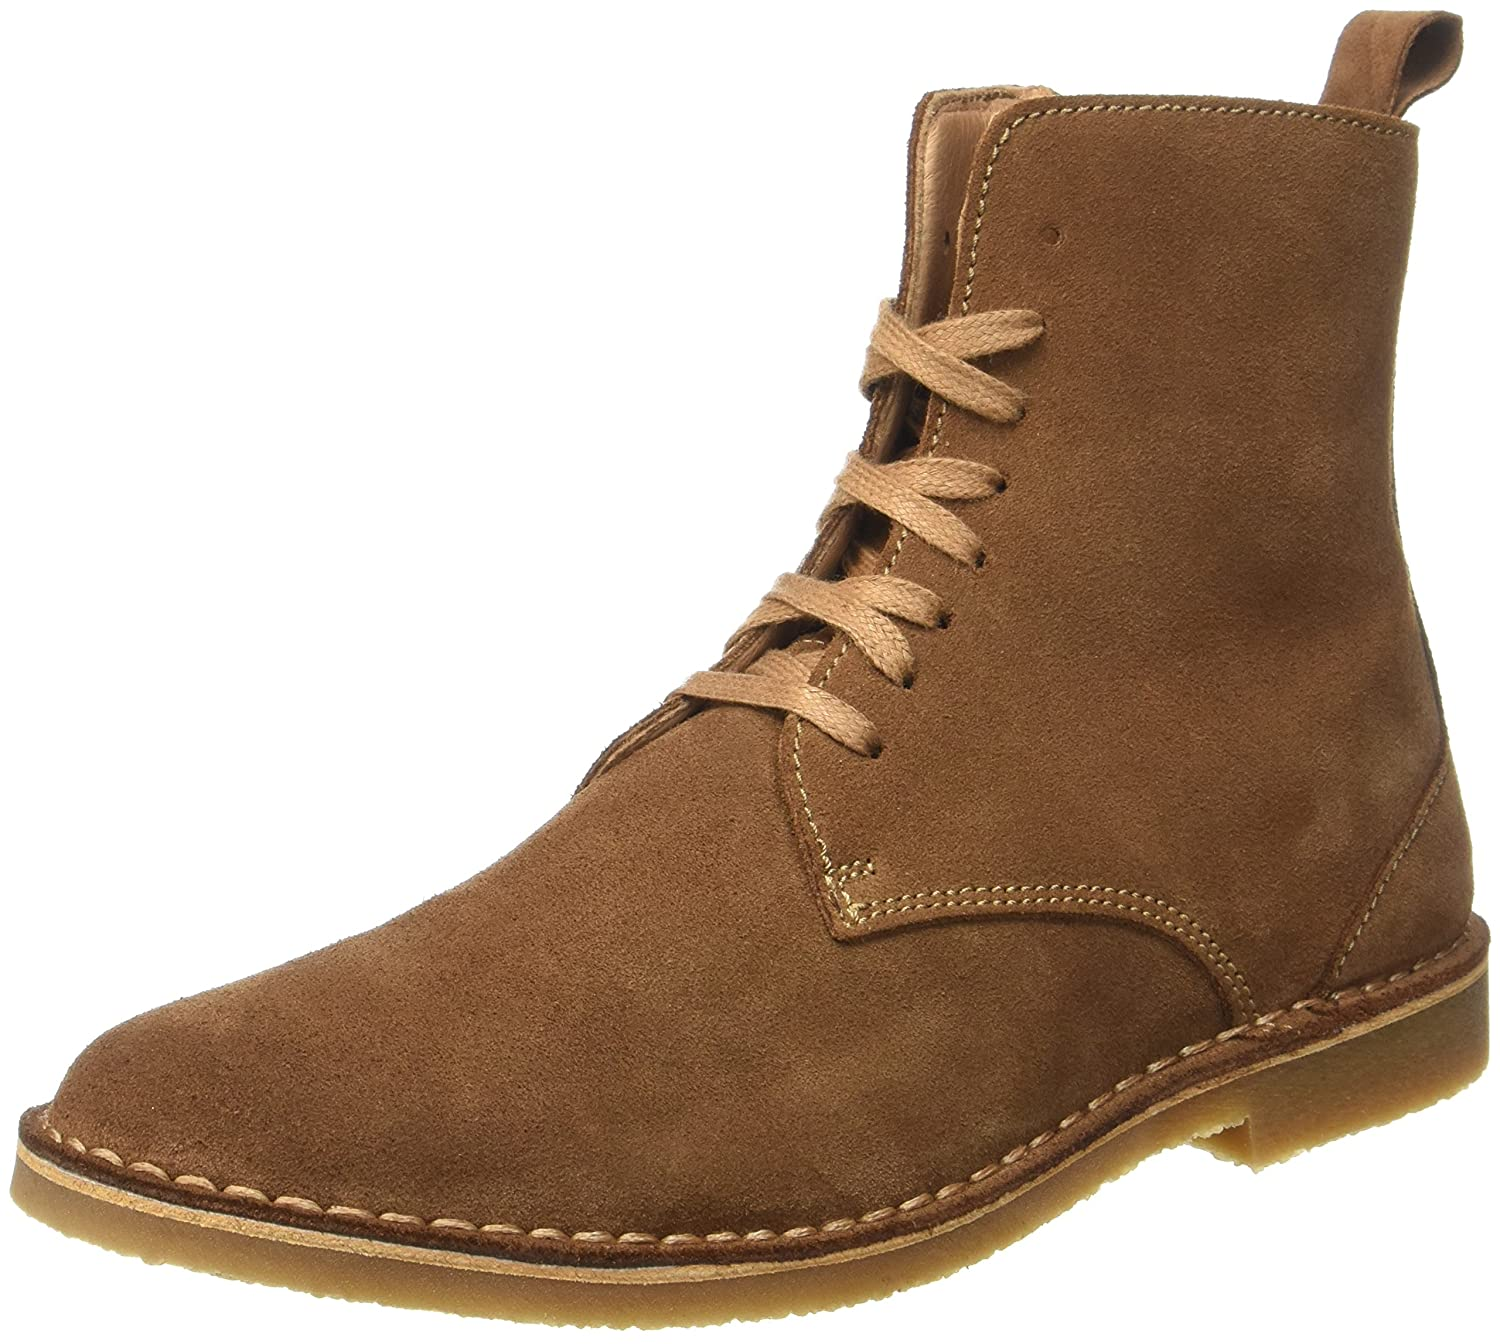 TALLA 45 EU. Selected Shhroyce High Suede Boot - Botines Hombre